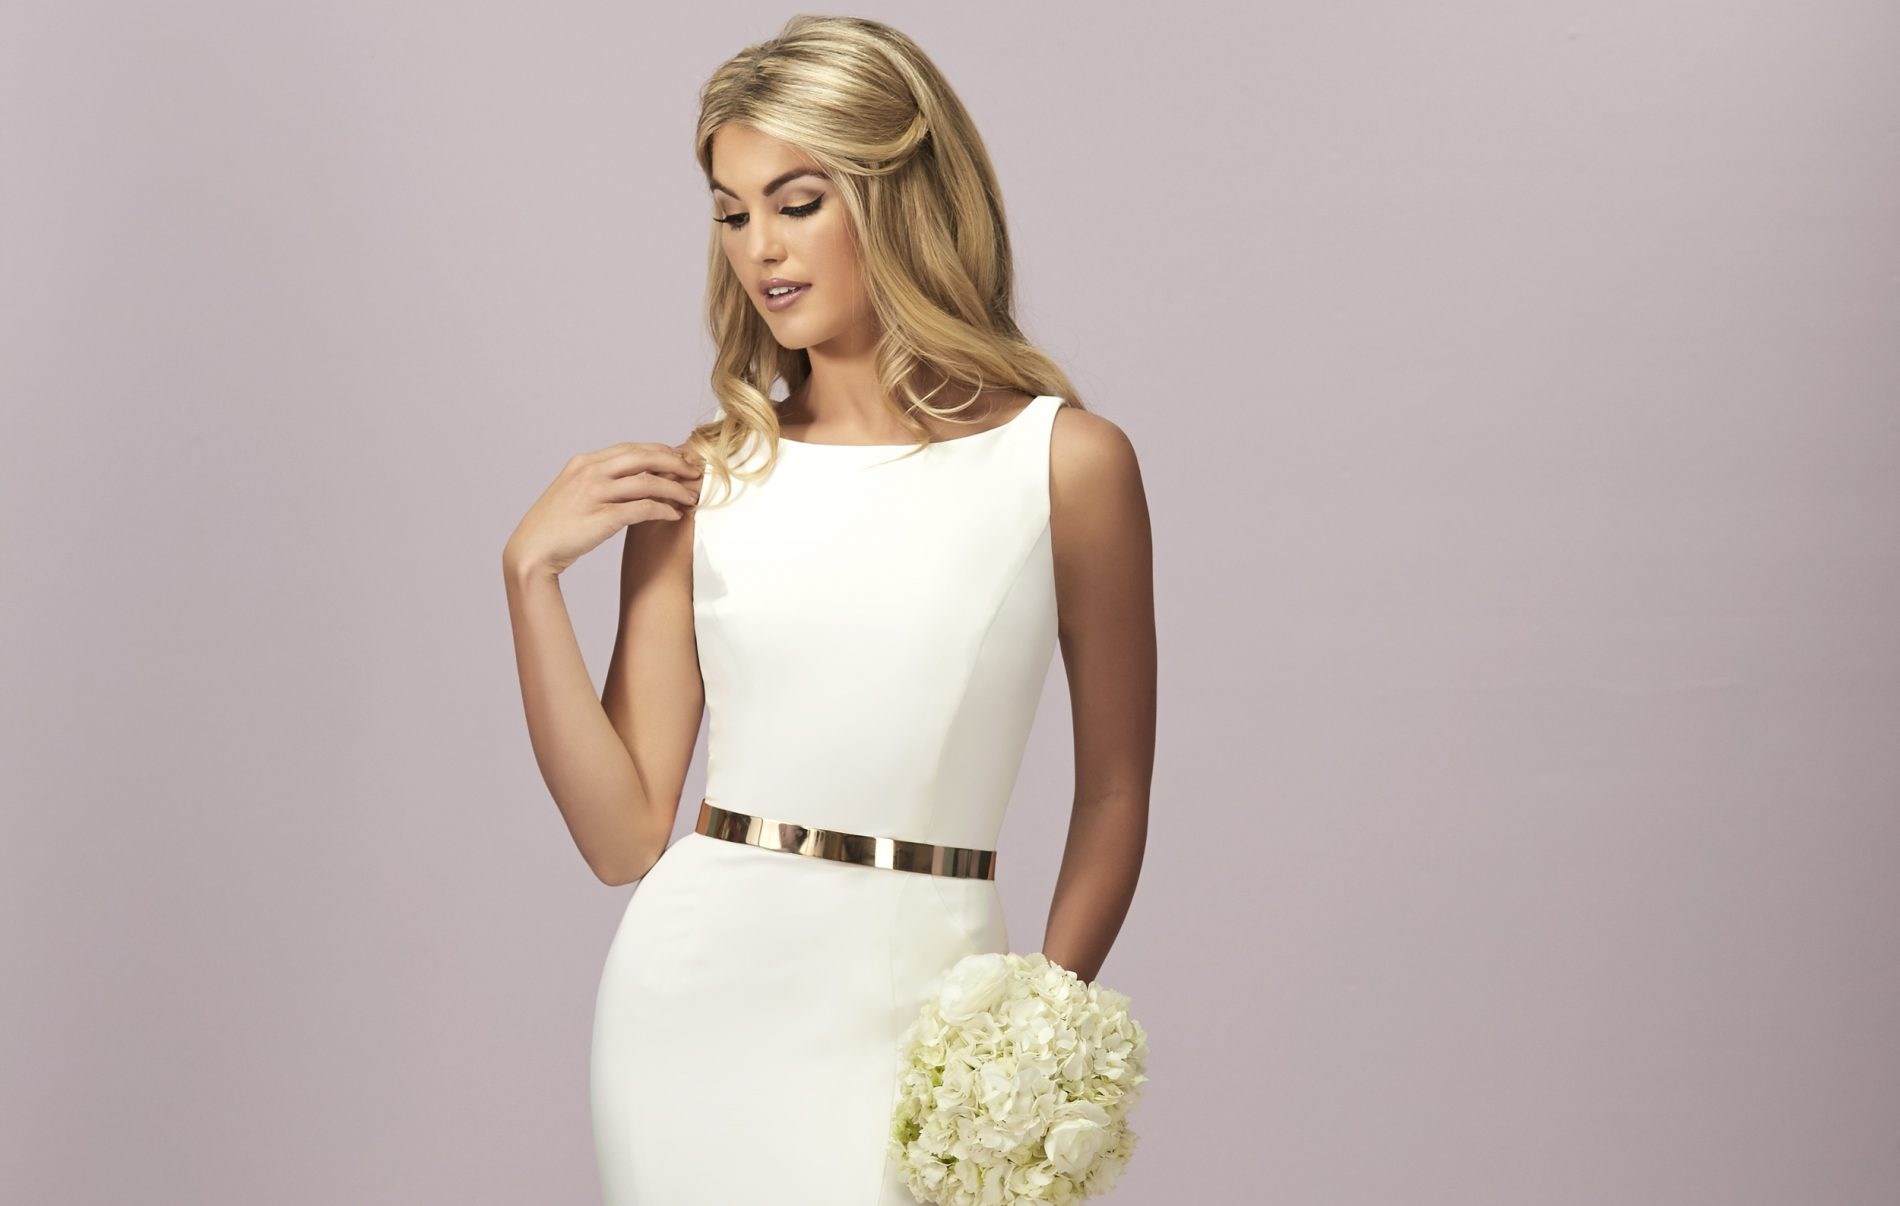 Sleek And Simple Wedding Dresses From Eternity Bride